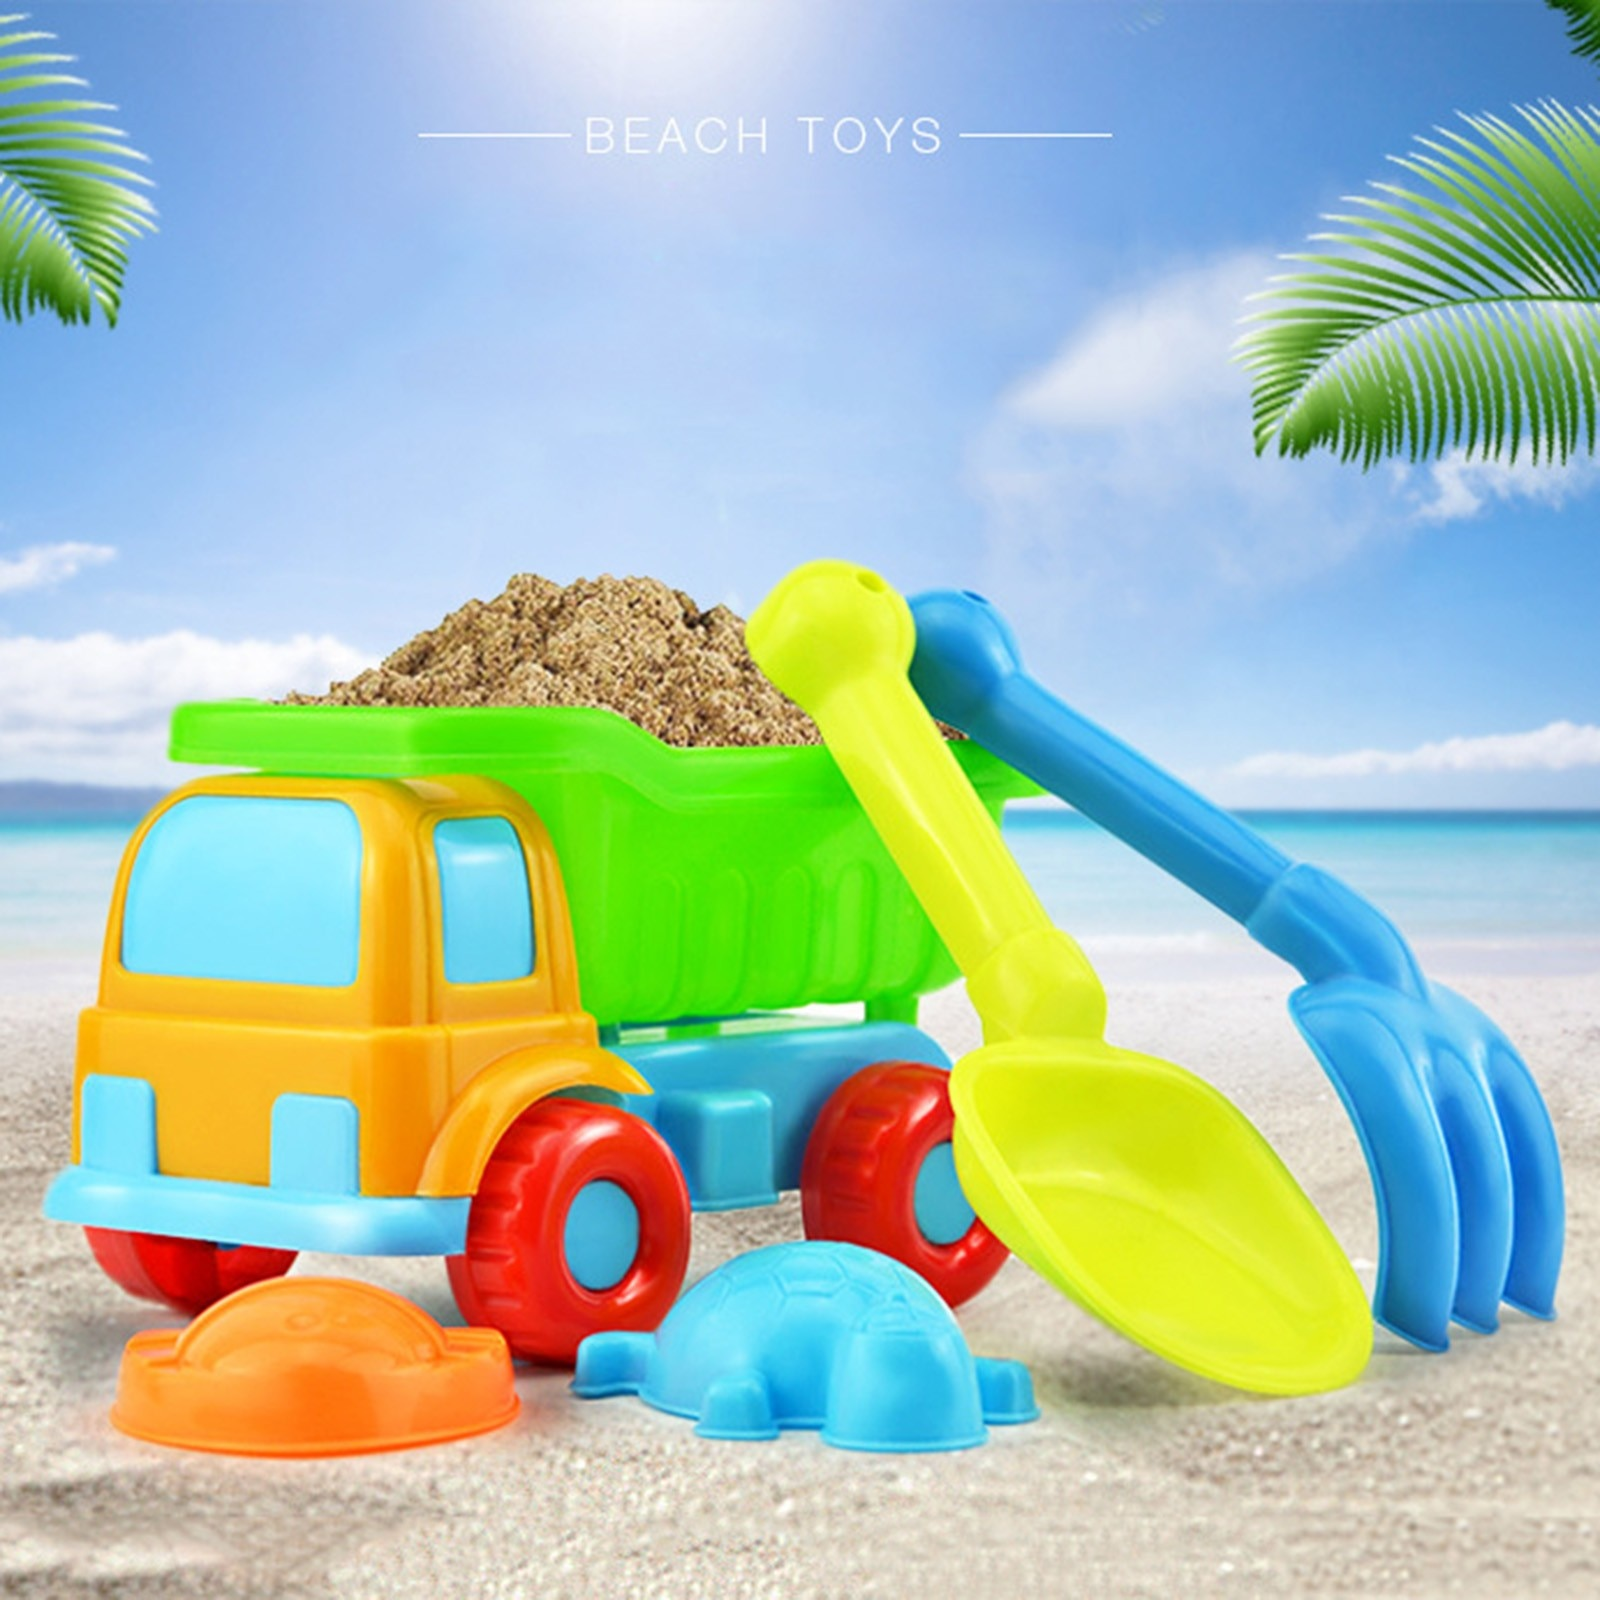 5 Piece Children Beach Toy Car Sand Set Sand Play Sandpit Toy Summer Outdoor Garden Sandbox Set Family Game Play Beach Toys #5 starry sky sand beach toy 18 piece sand set magic space clay sand puzzle power toys